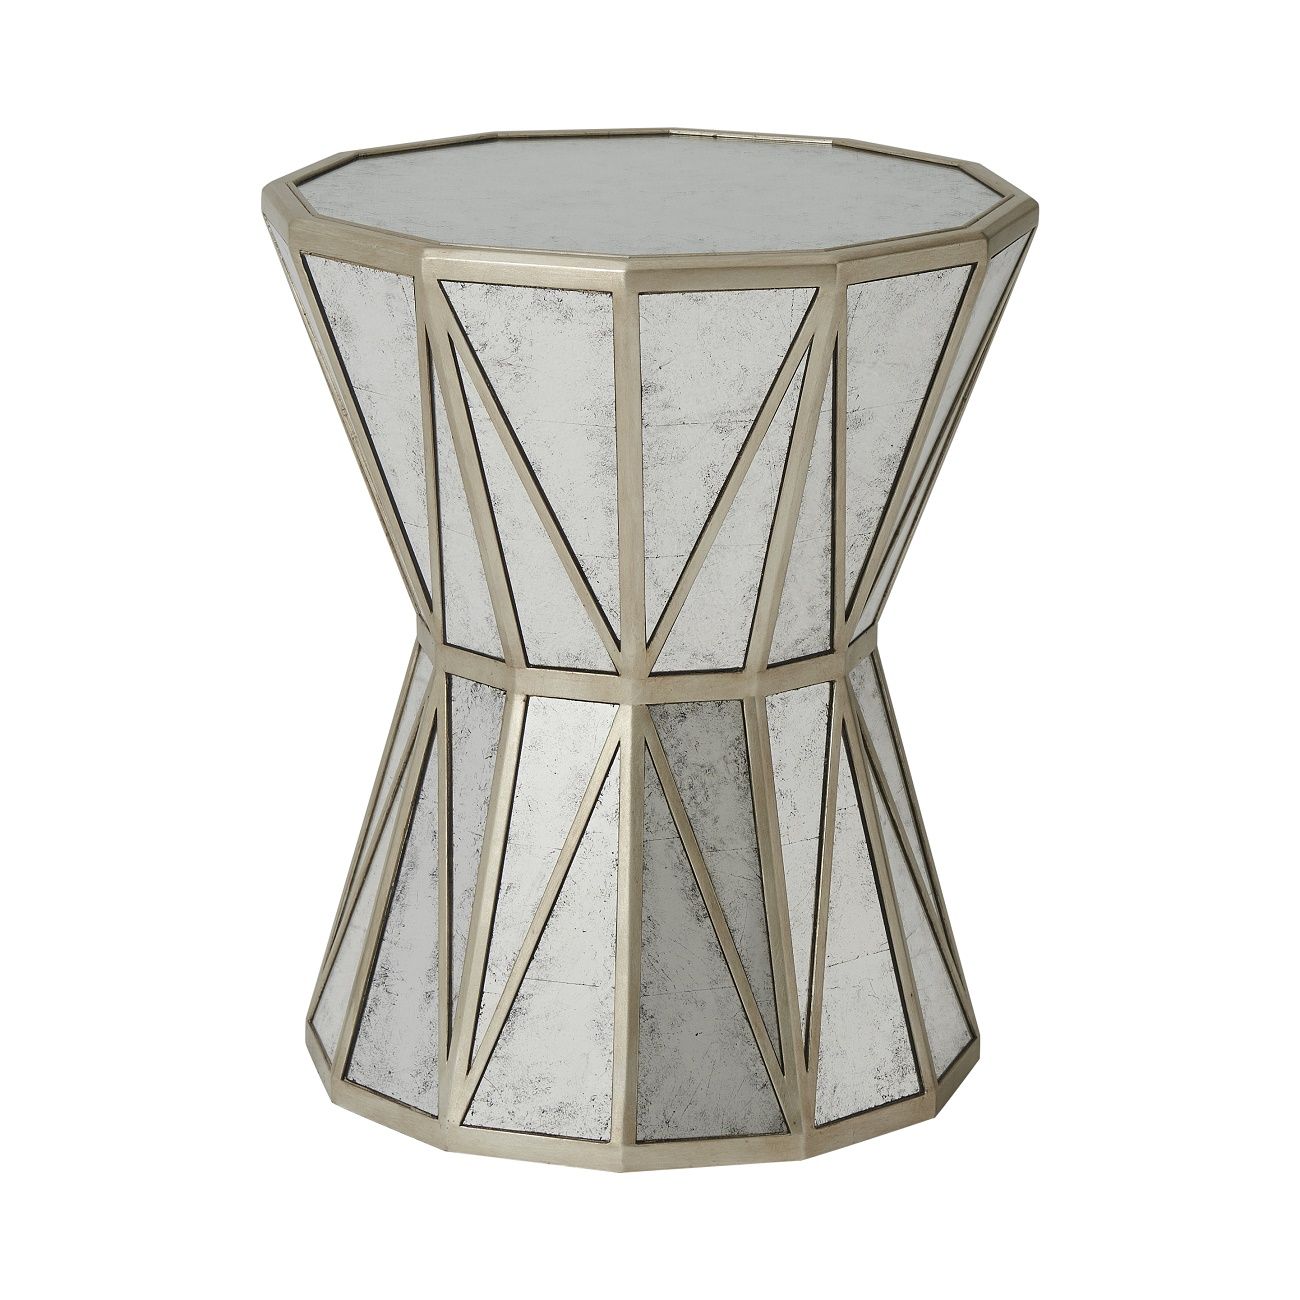 Theodore Alexander A Dozen Leaves Accent Lamp Table Brooklyn, New York